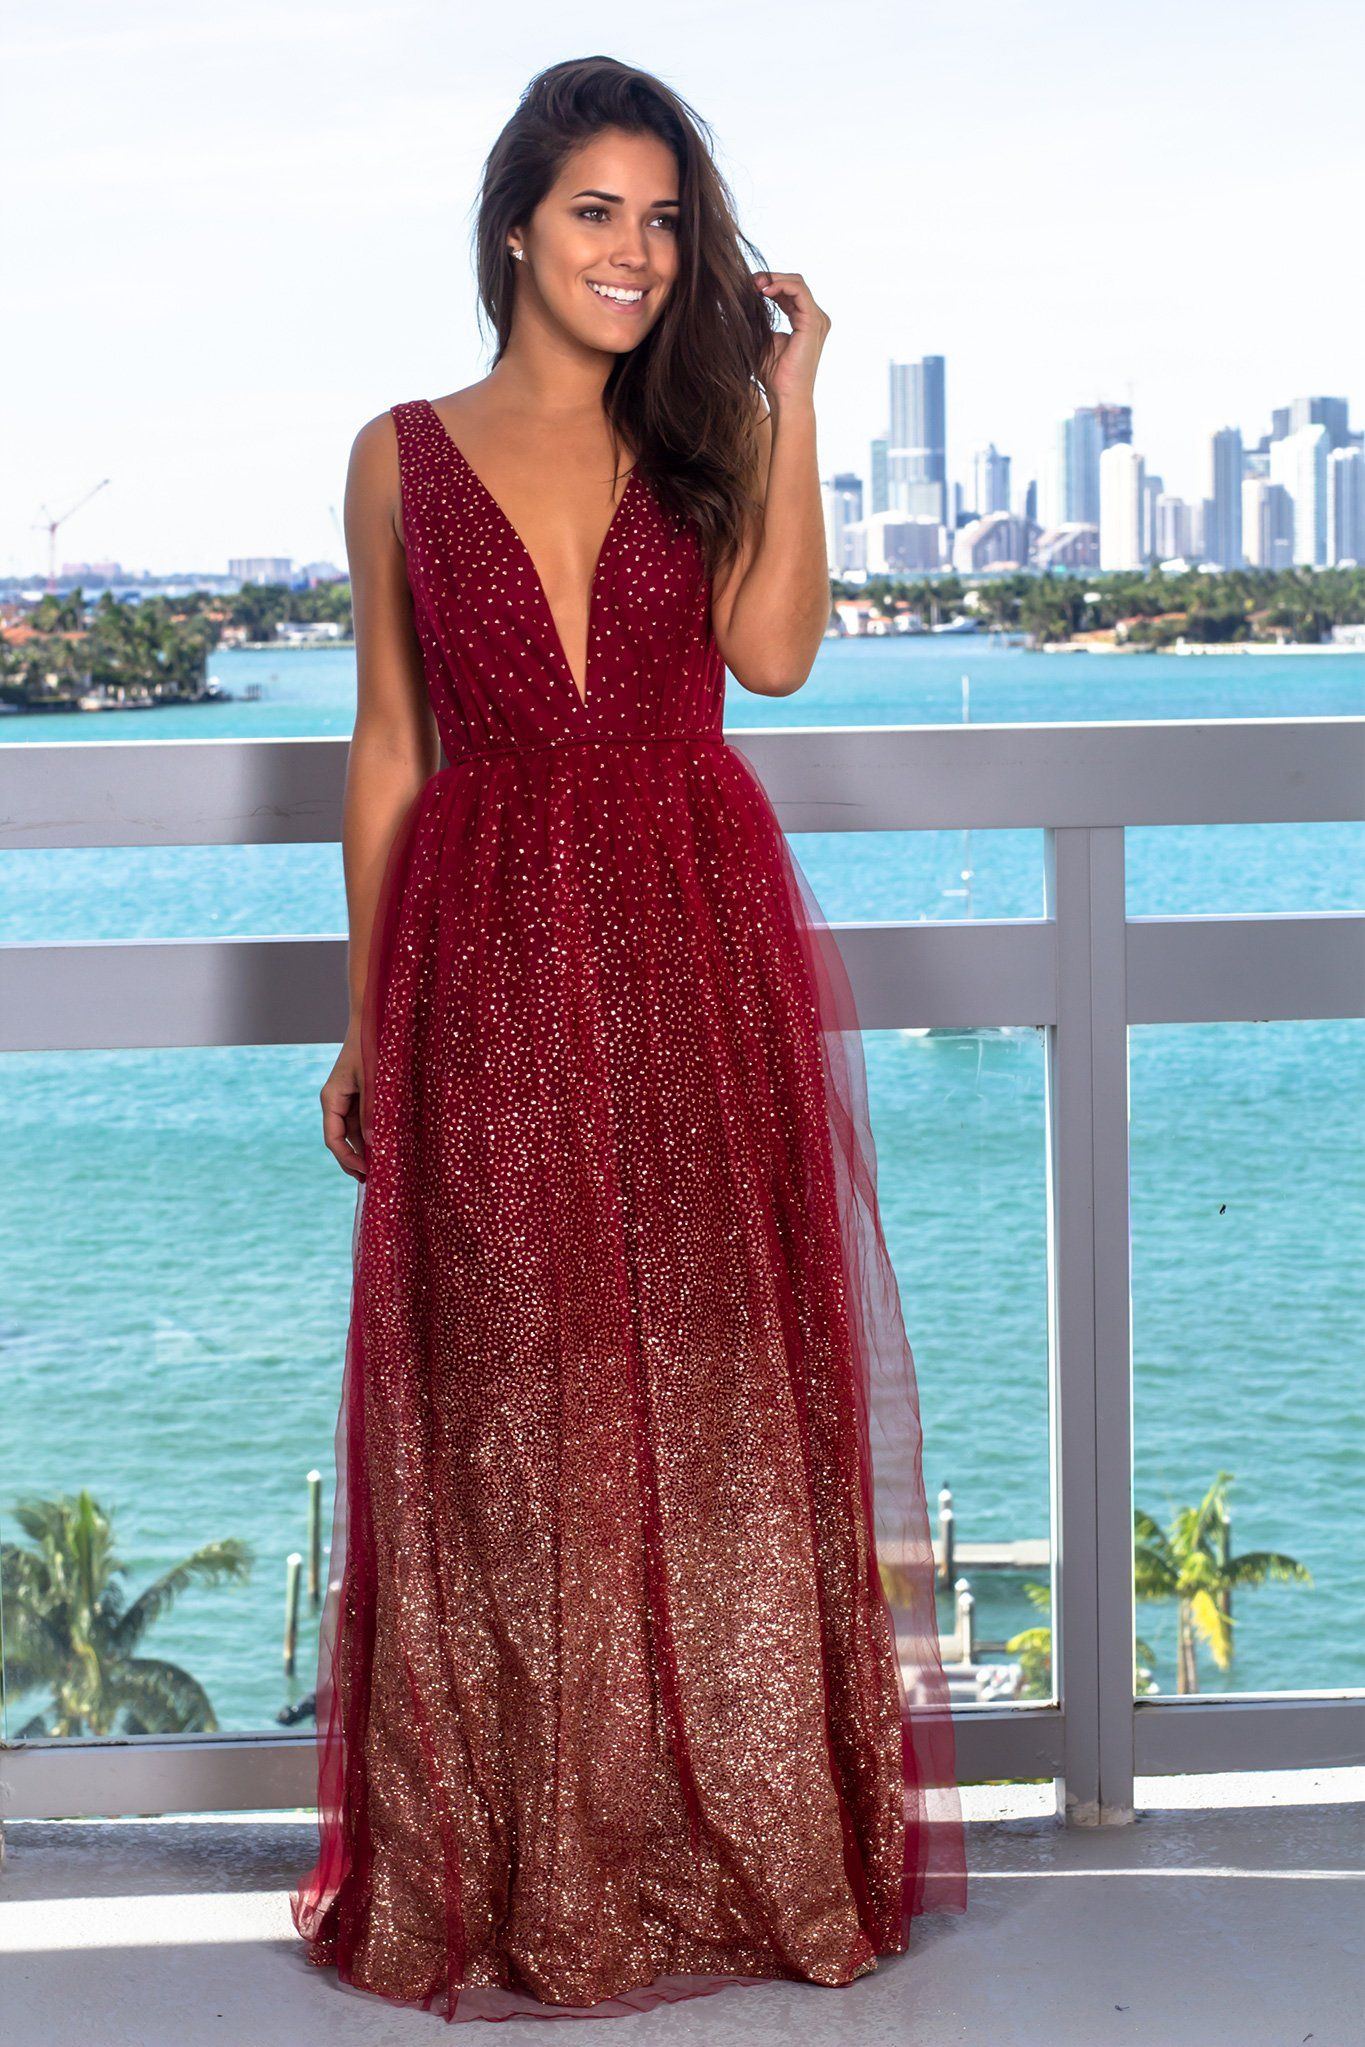 d31658c2e7 Burgundy Tulle Maxi Dress with Glitter Detail in 2019 | Outfits ...